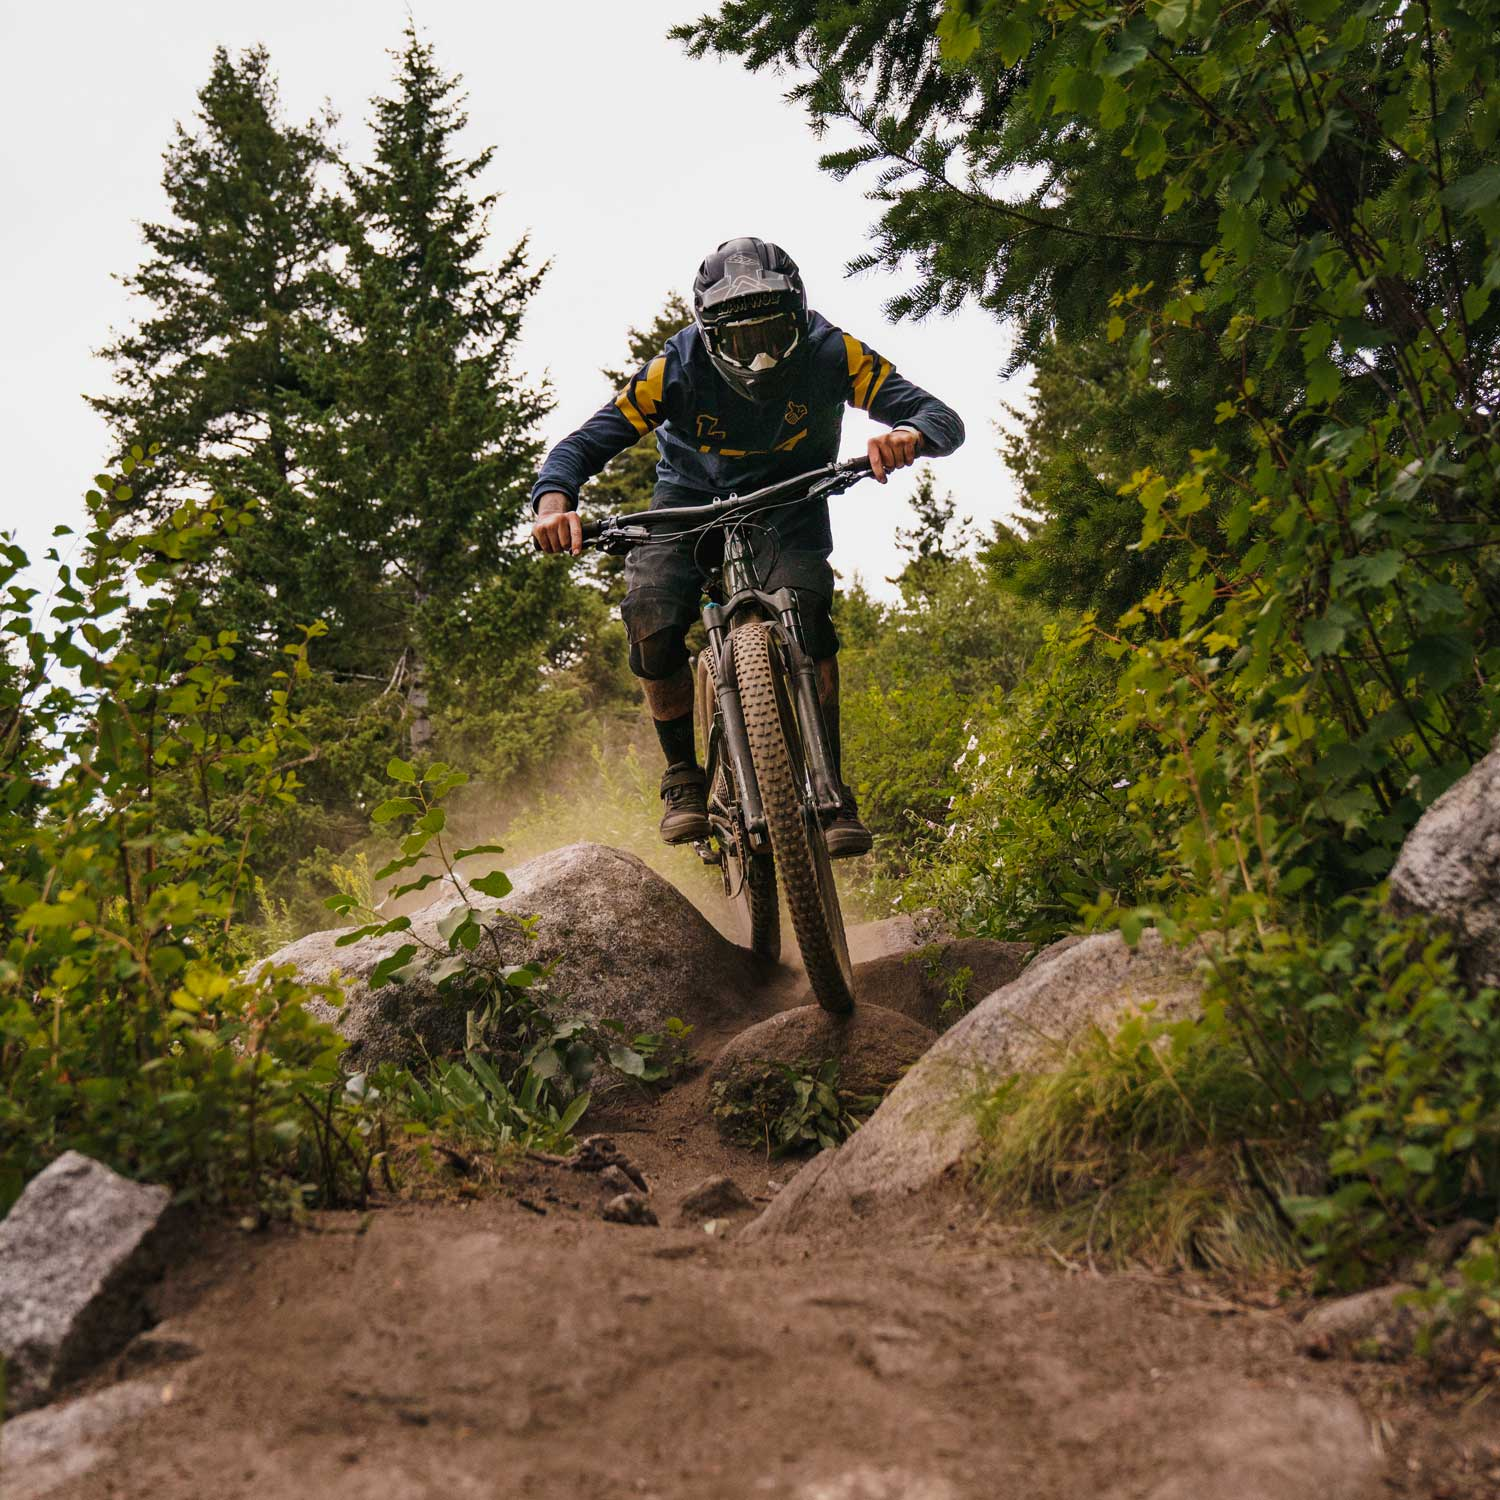 North American Bike Park Review Tour - Bogus Basin Bike Park